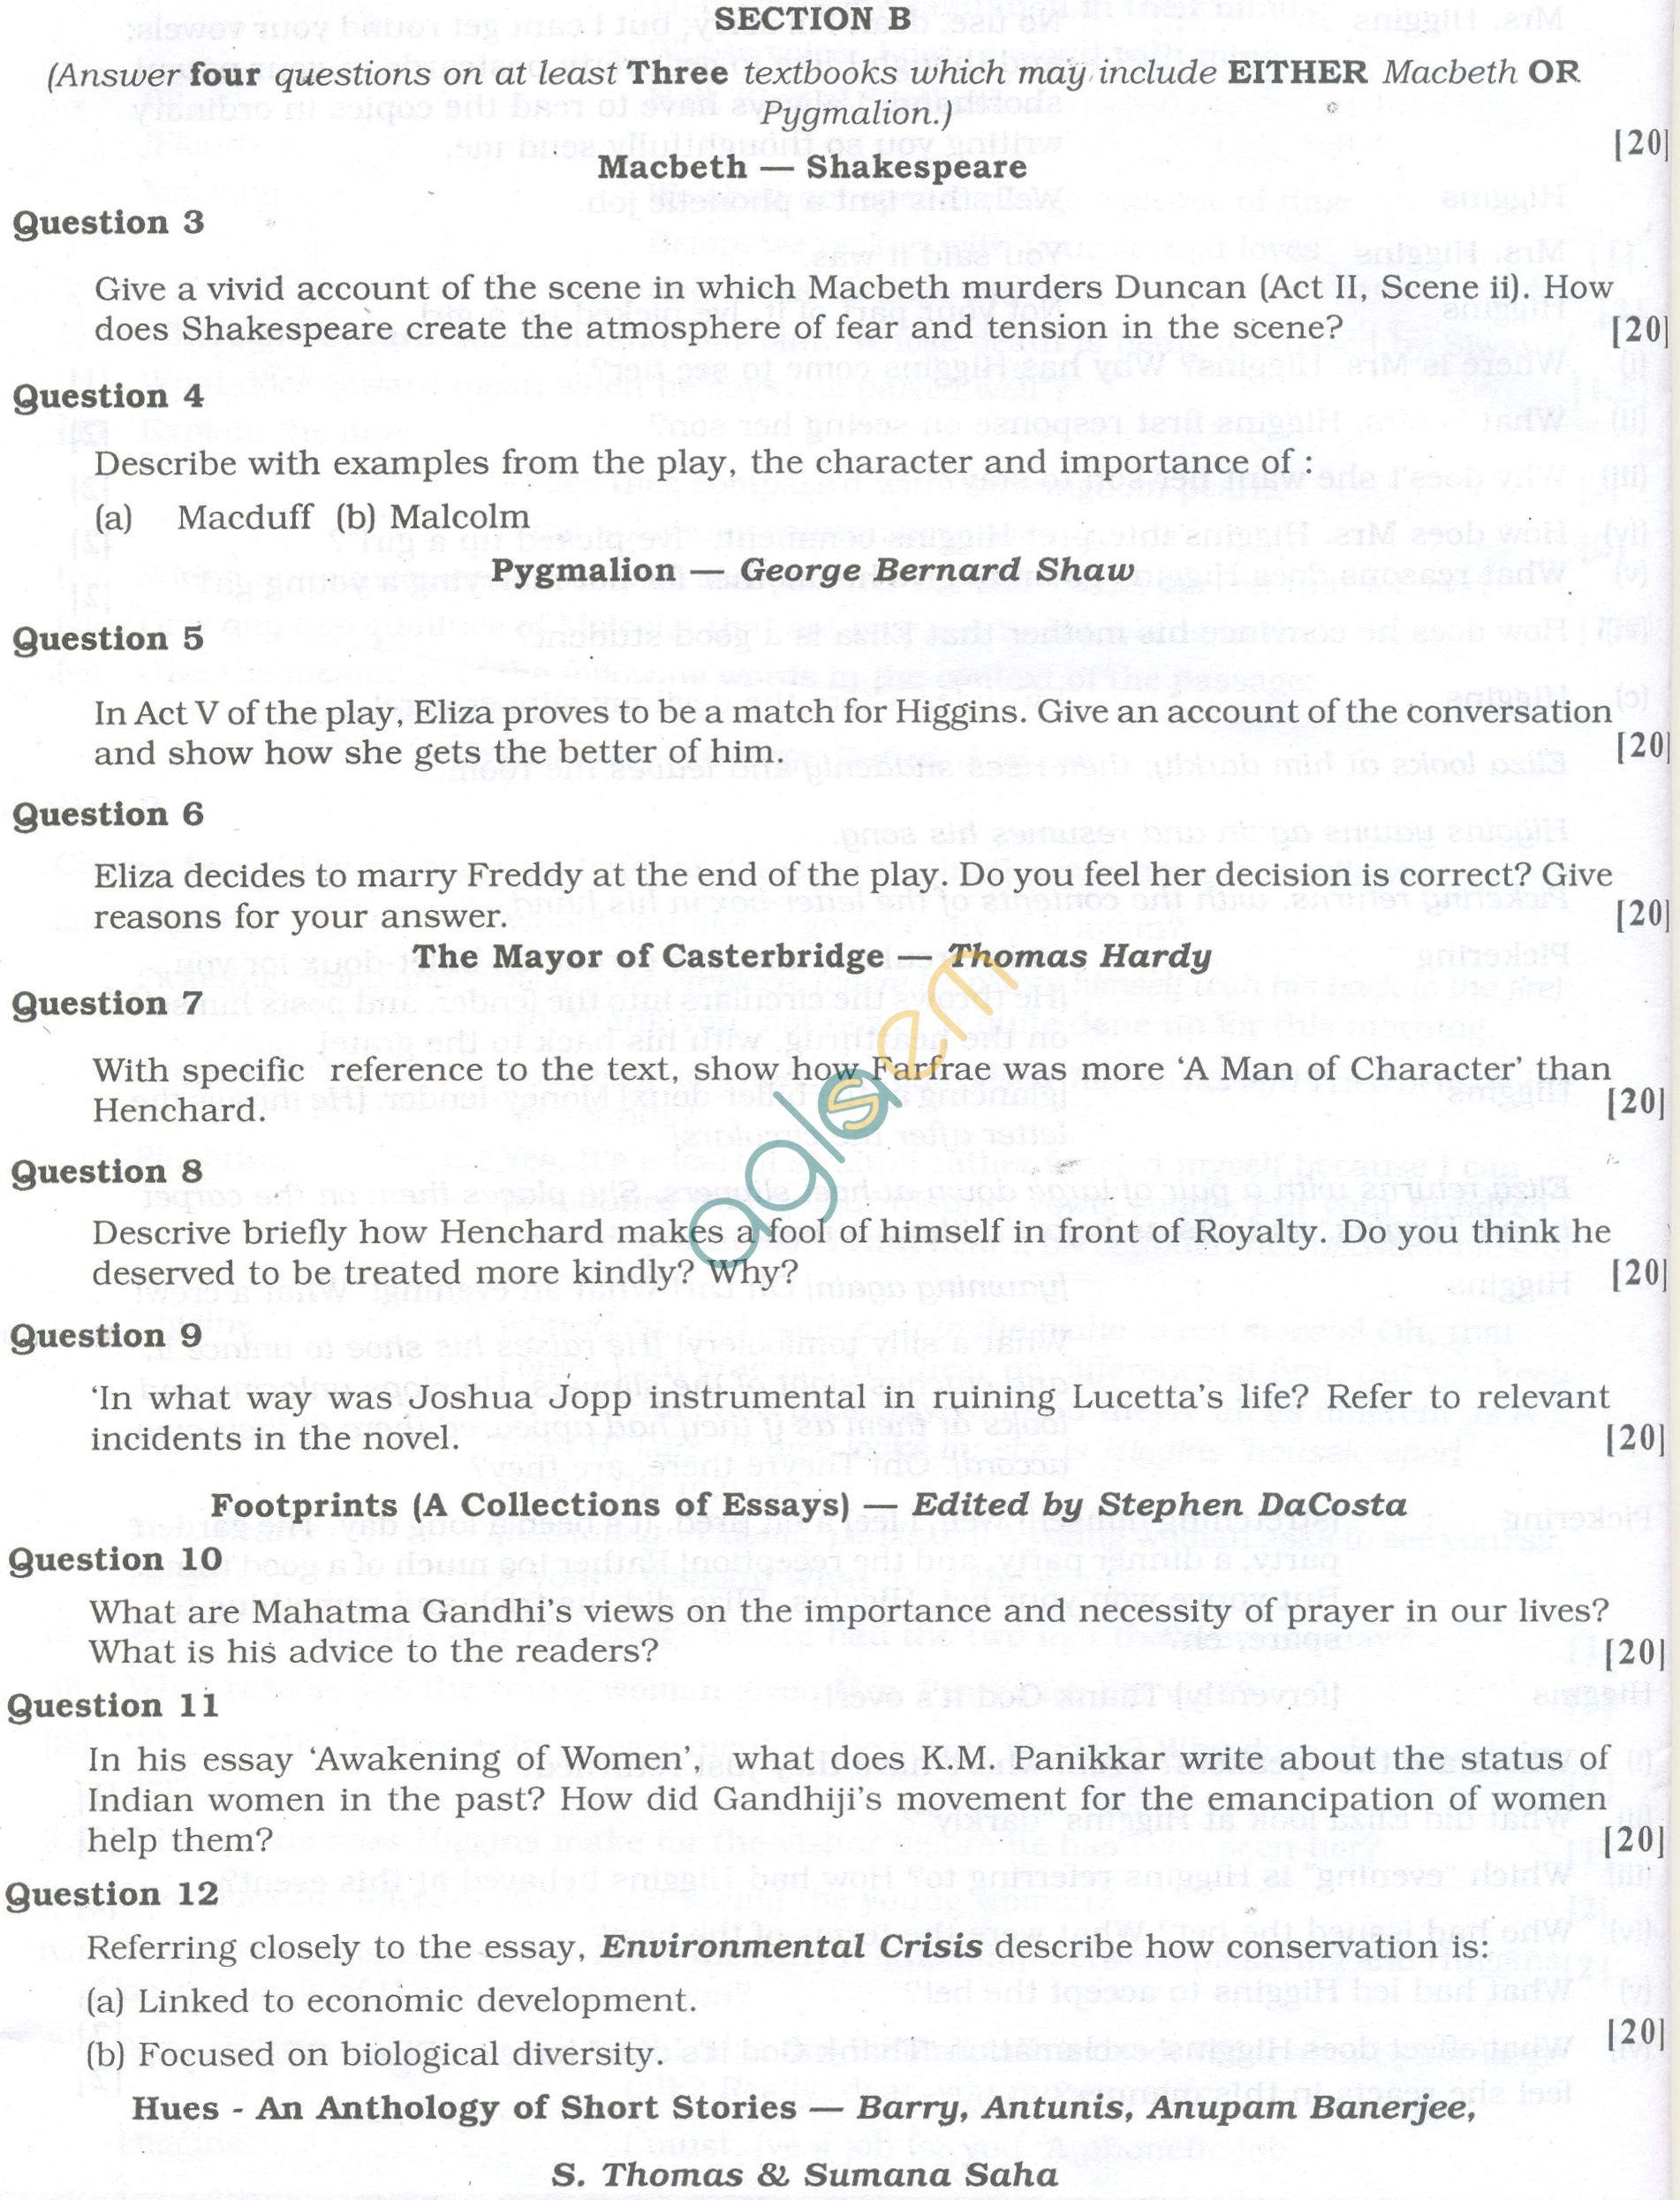 ISC Question Papers 2013 for Class 12 - English Paper 2